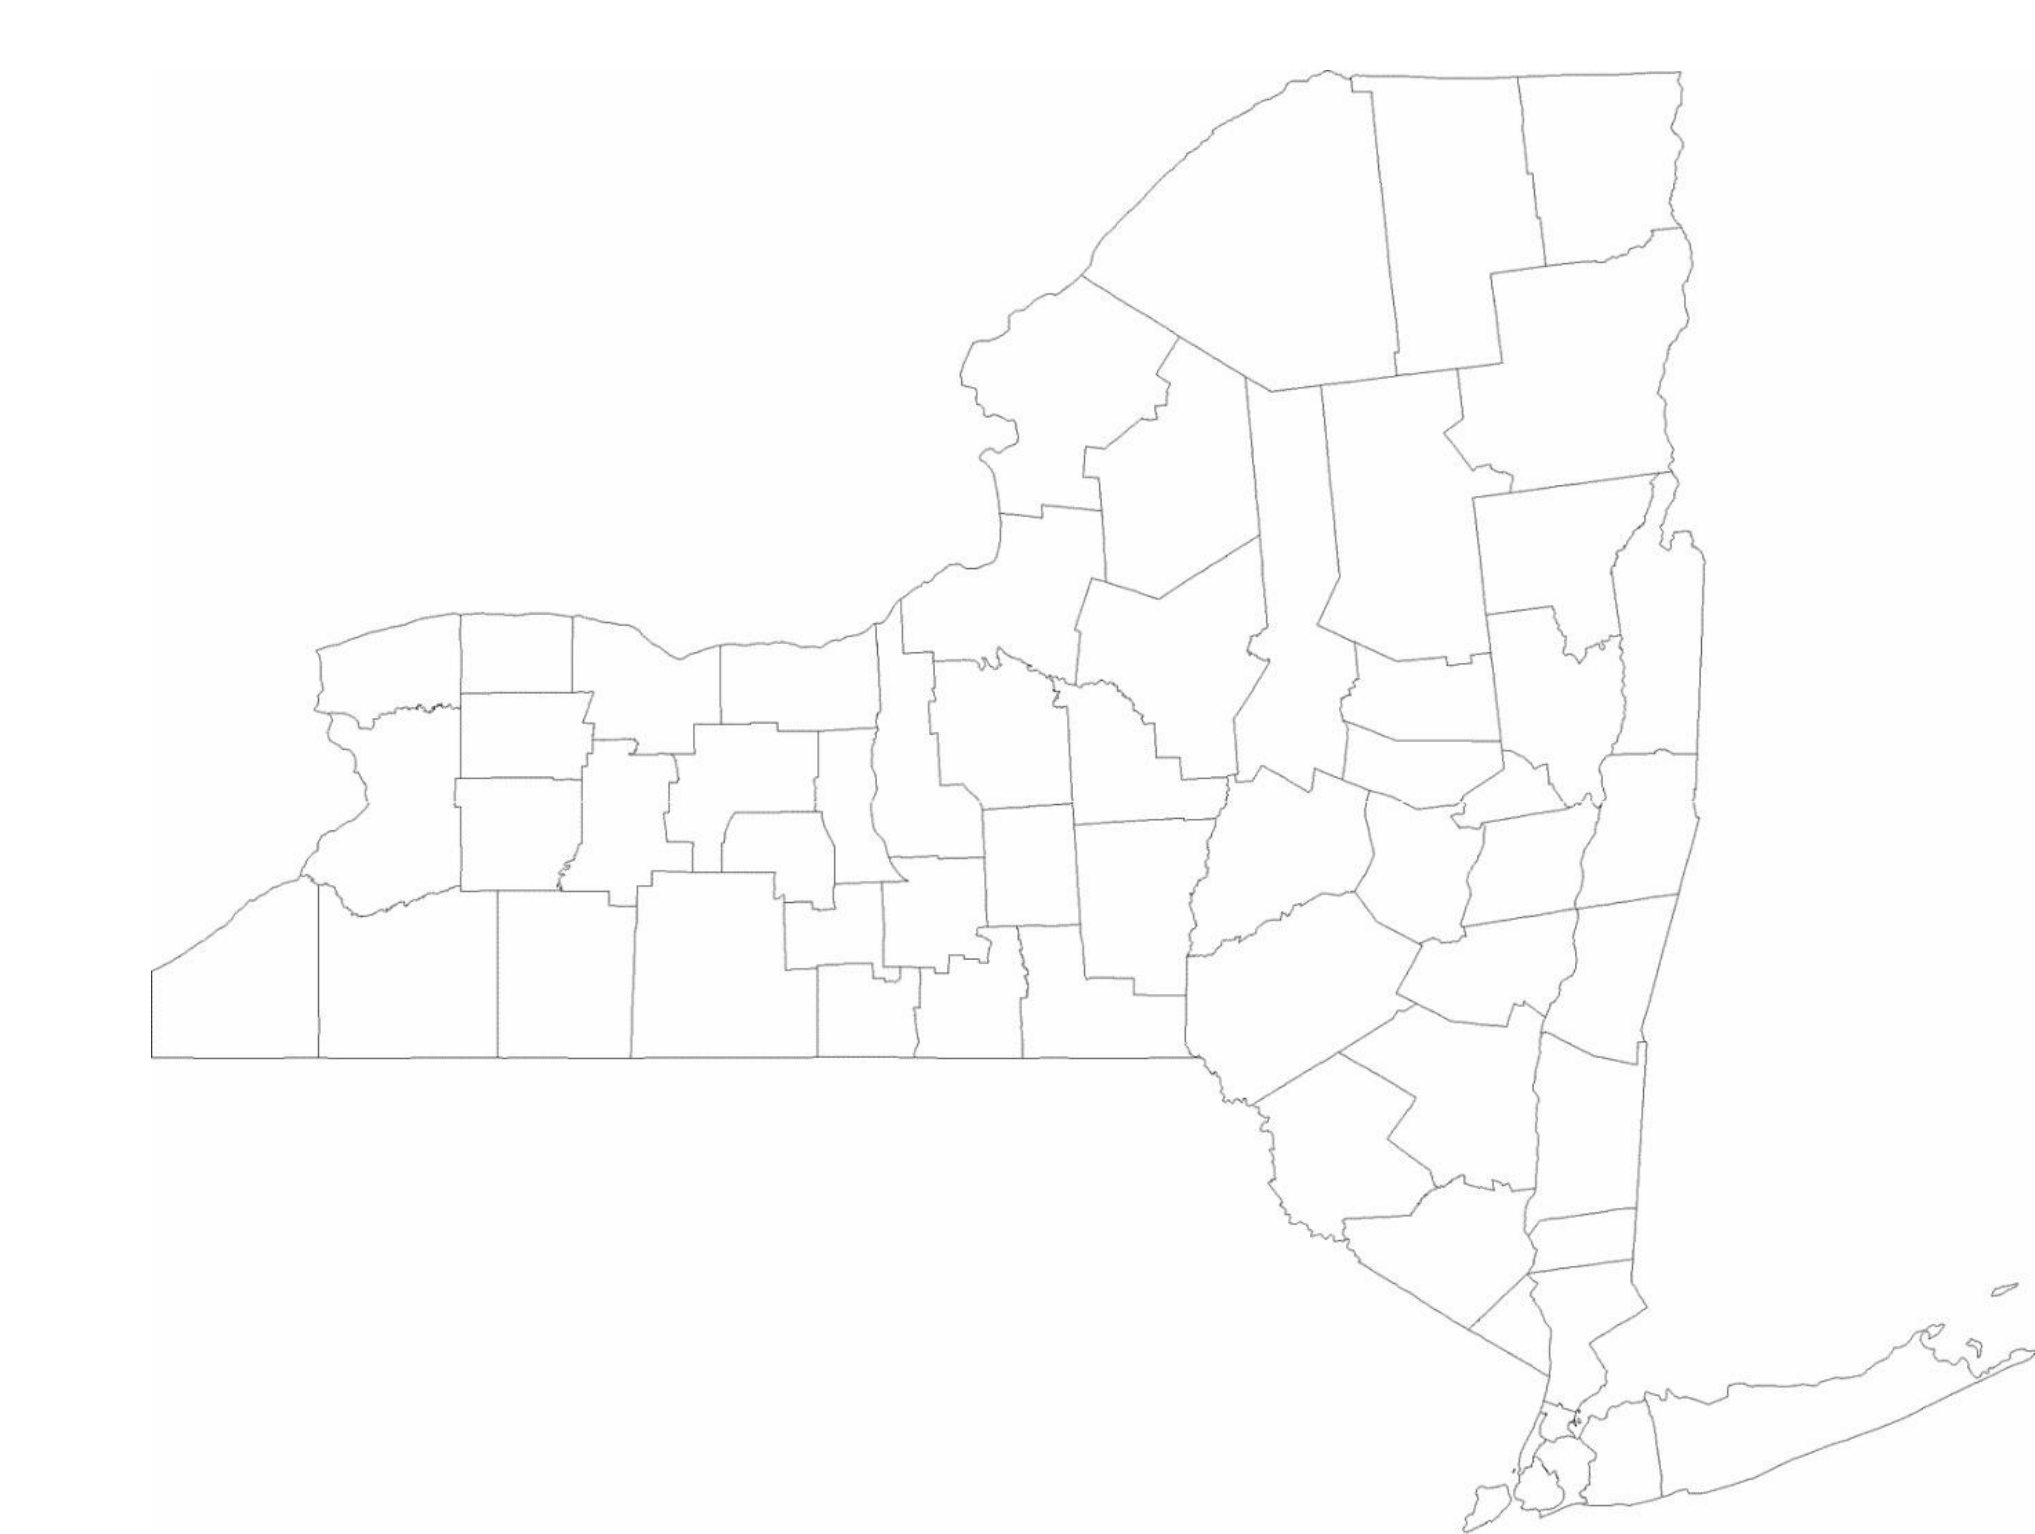 Blank New York County Map Free Download